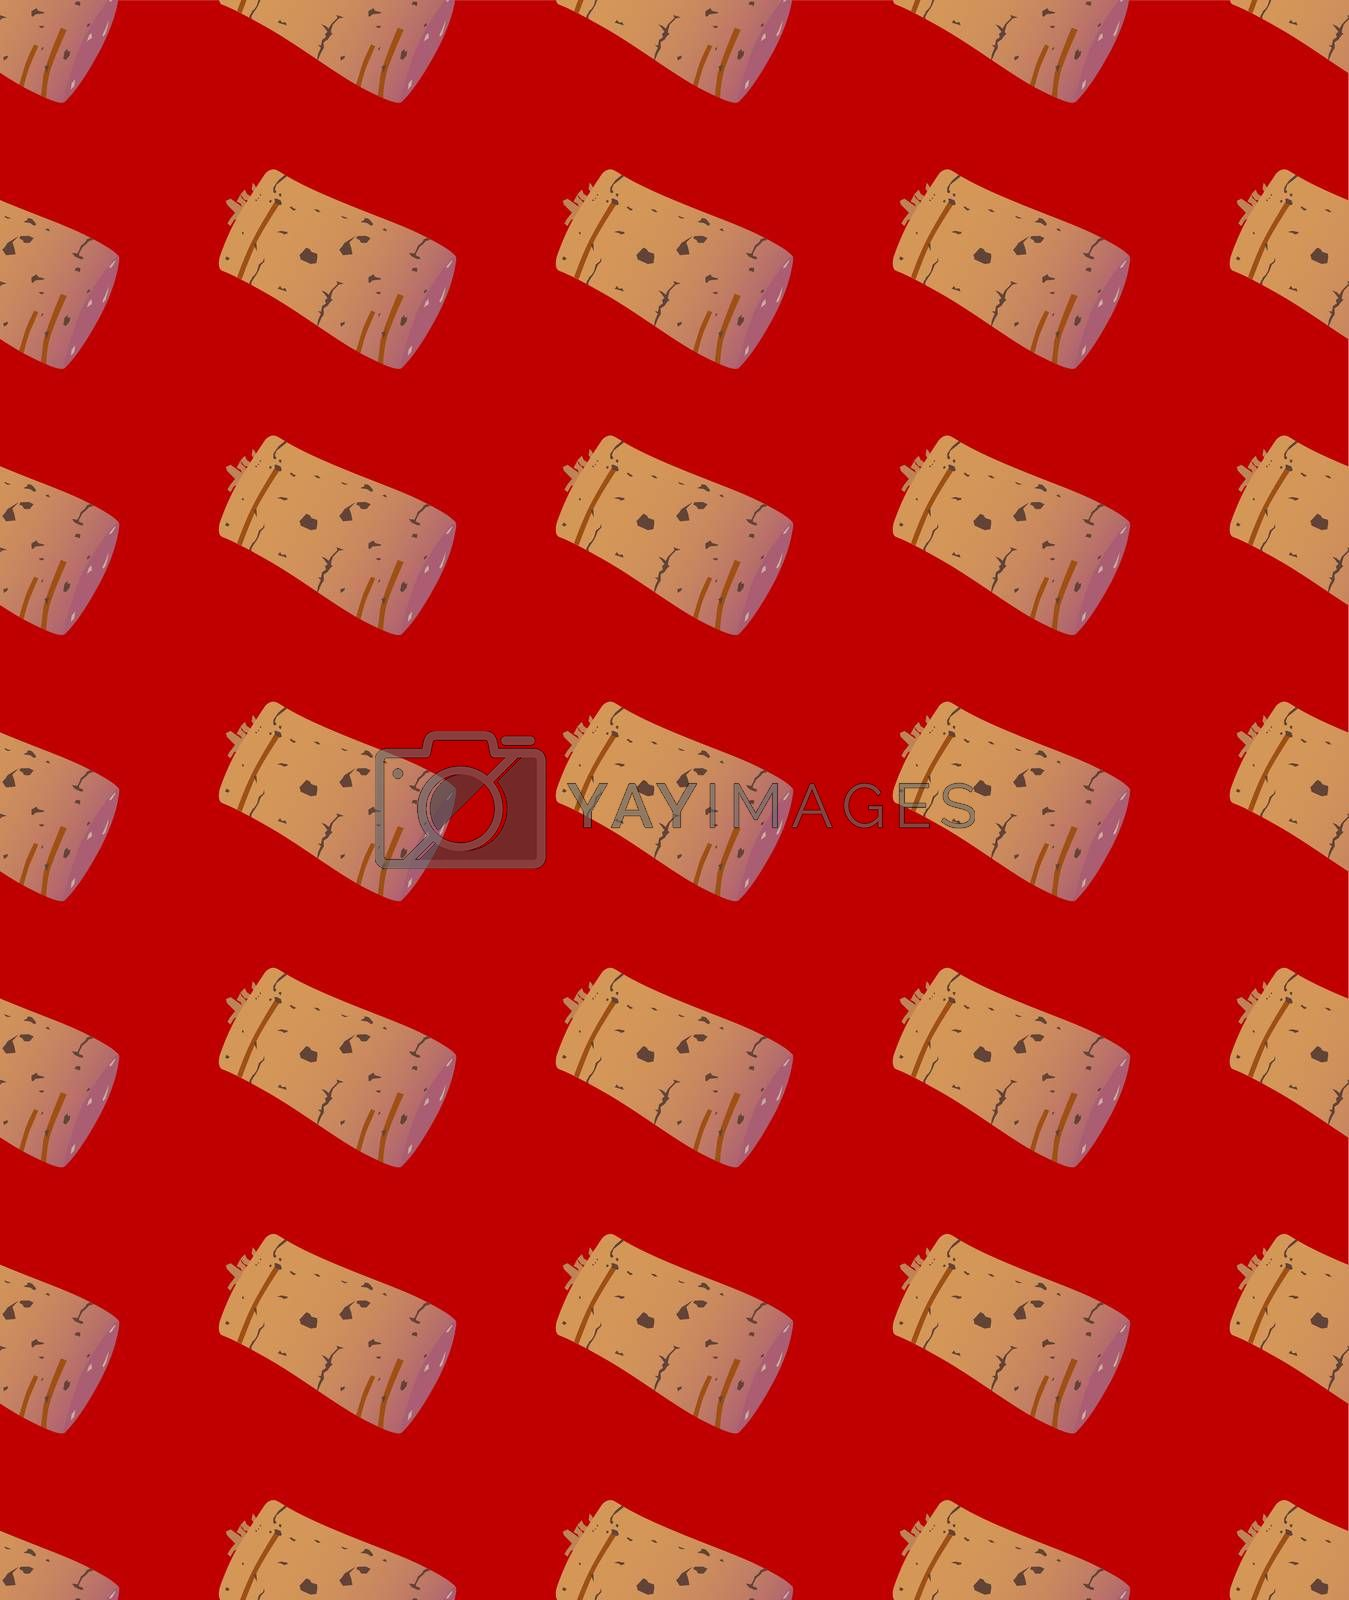 A typical red wine bottle cork as a seamless background pattern